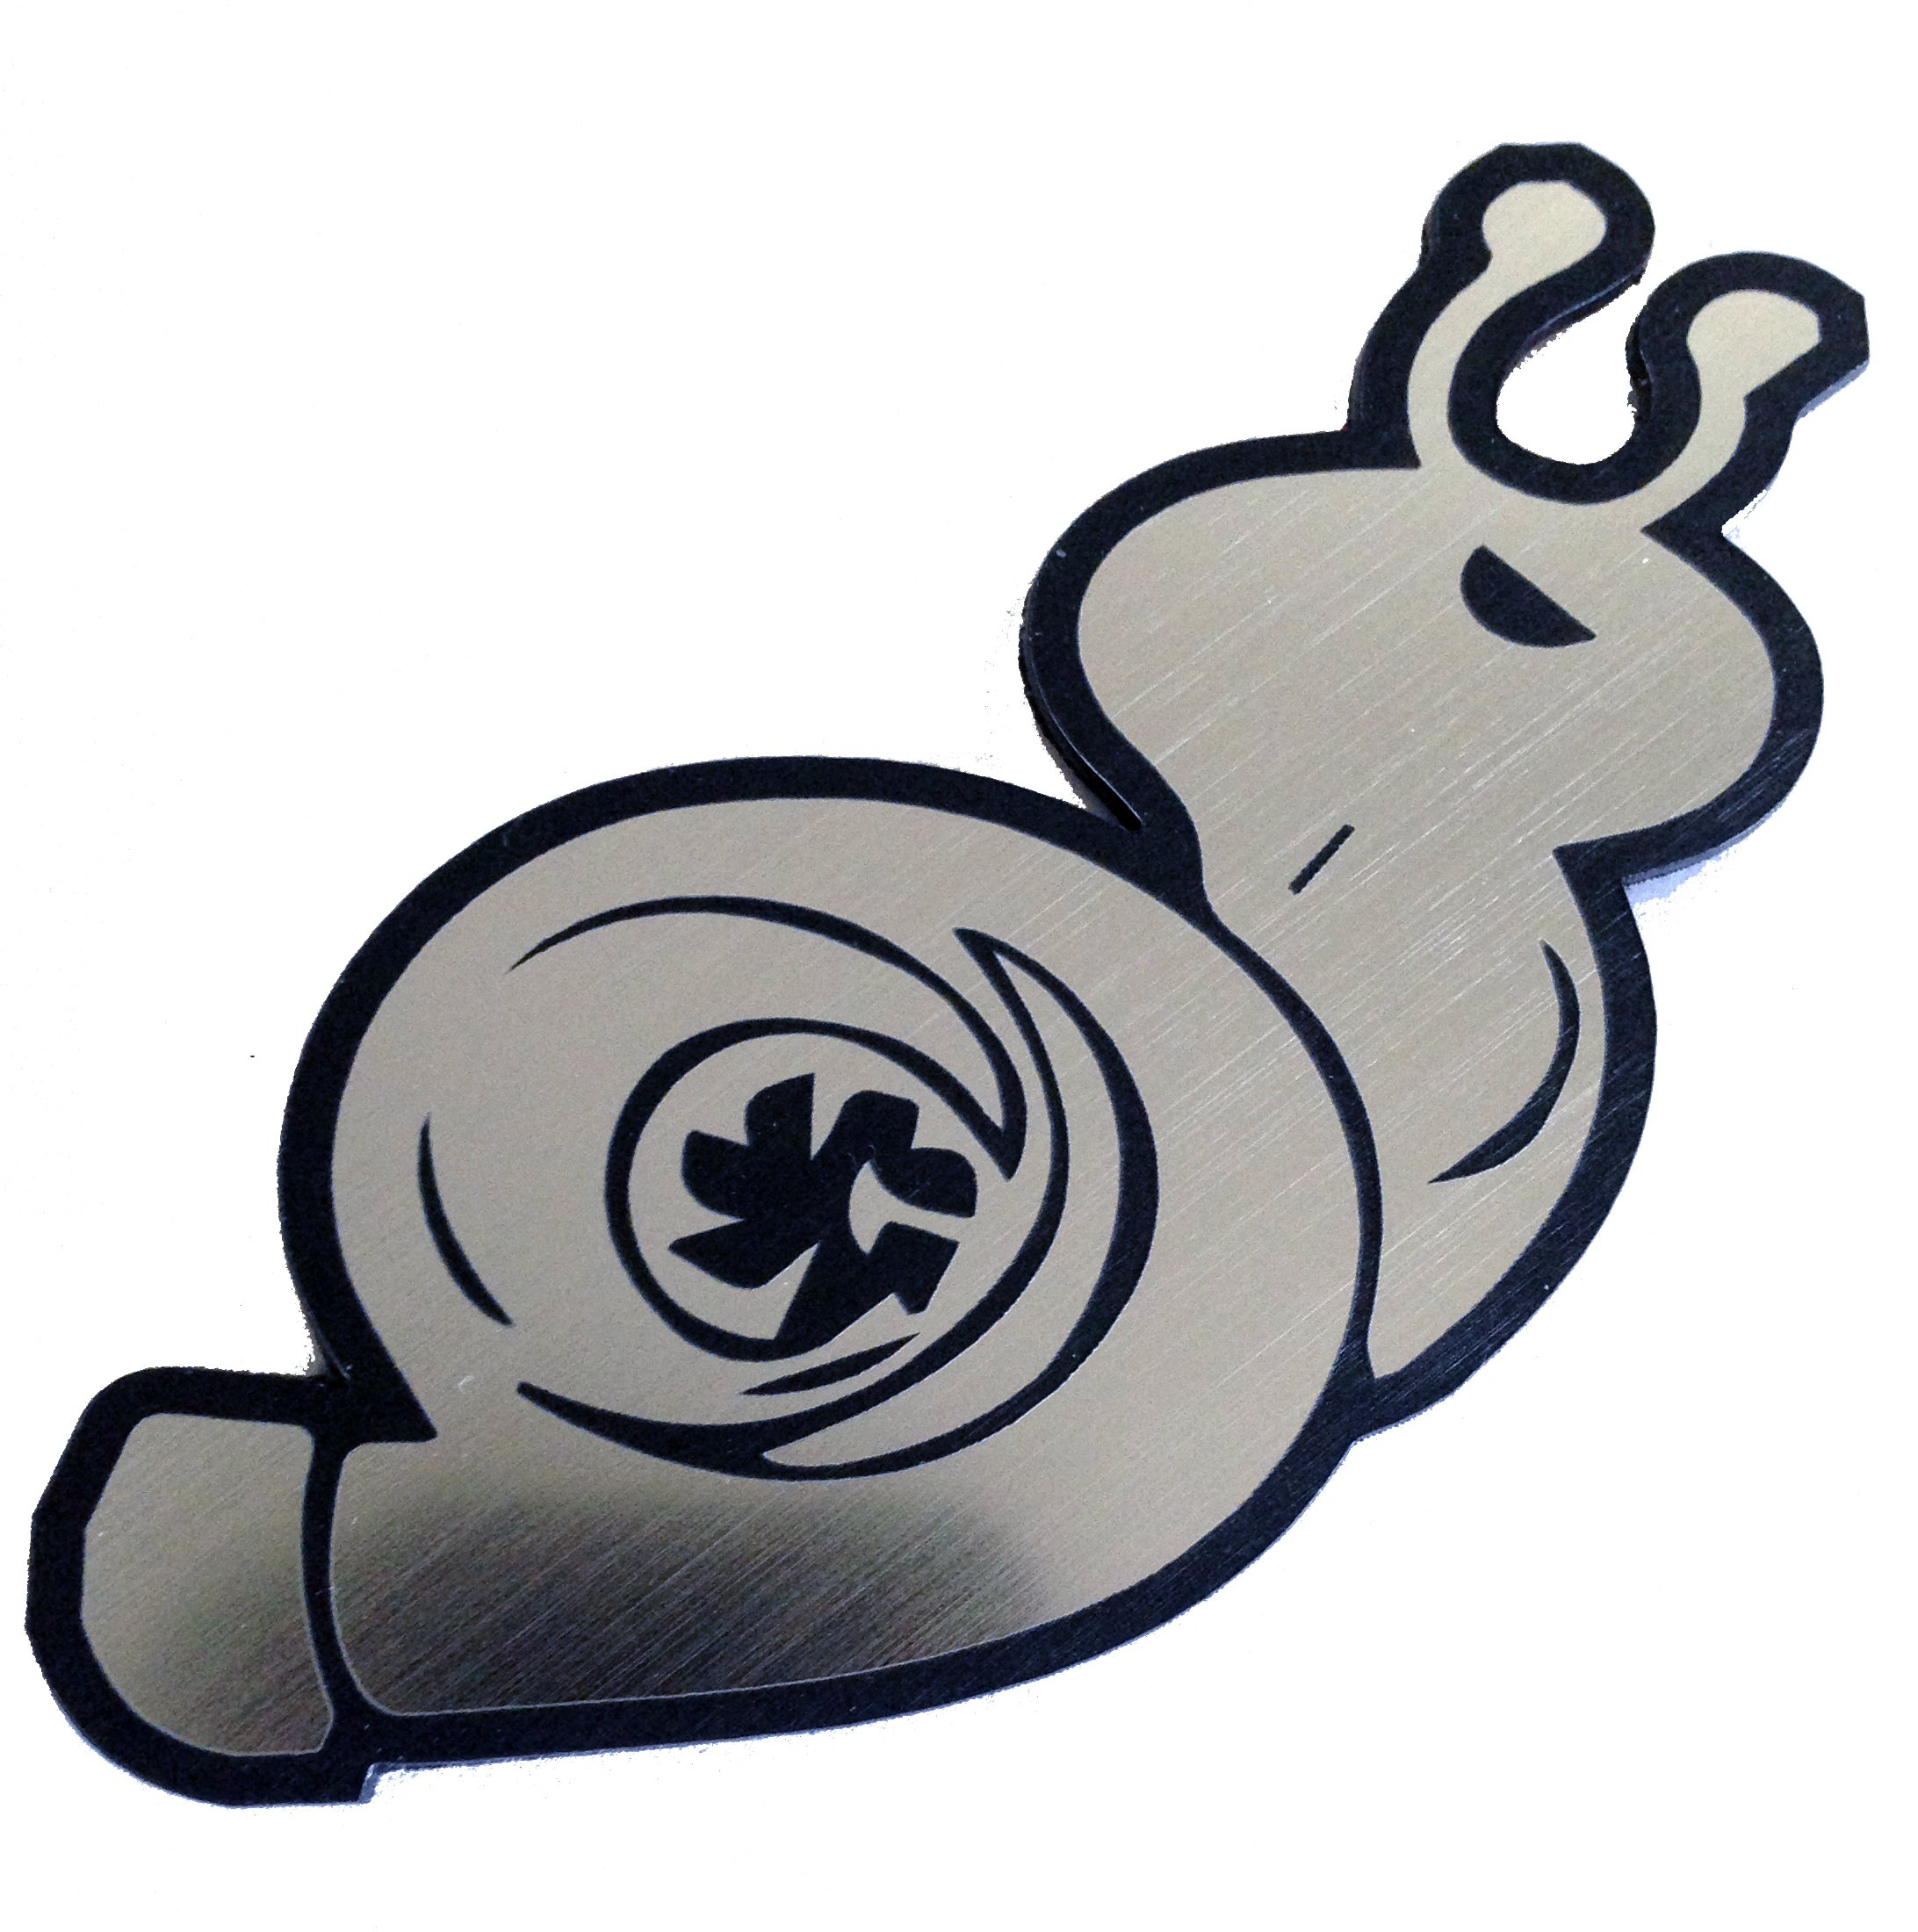 Keen JDM Boosted Snail Decal Turbo Turbocharger Boost PSI Vinyl Sticker 5 X 4 in Decal